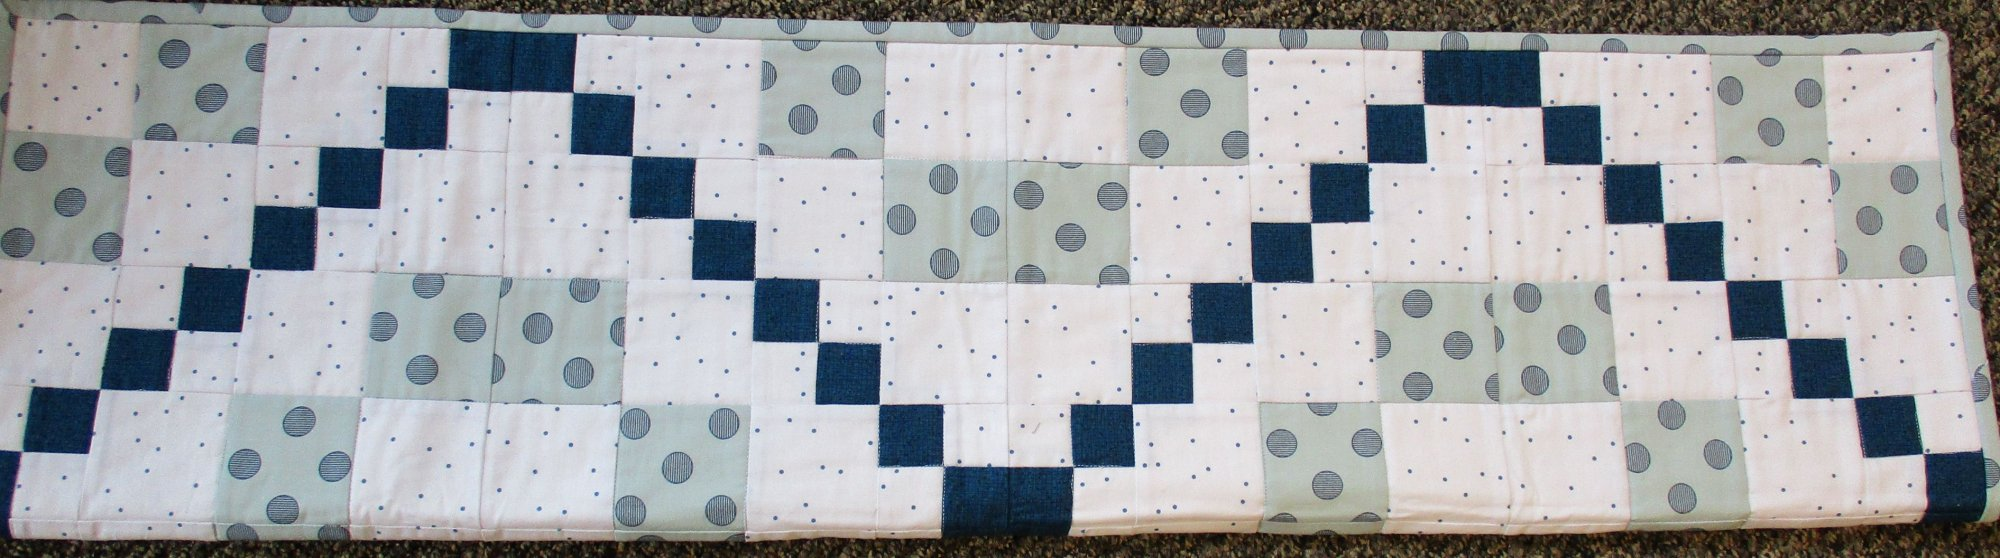 Quilters Trek 2020 Quilt kit PREORDER  Row by Row